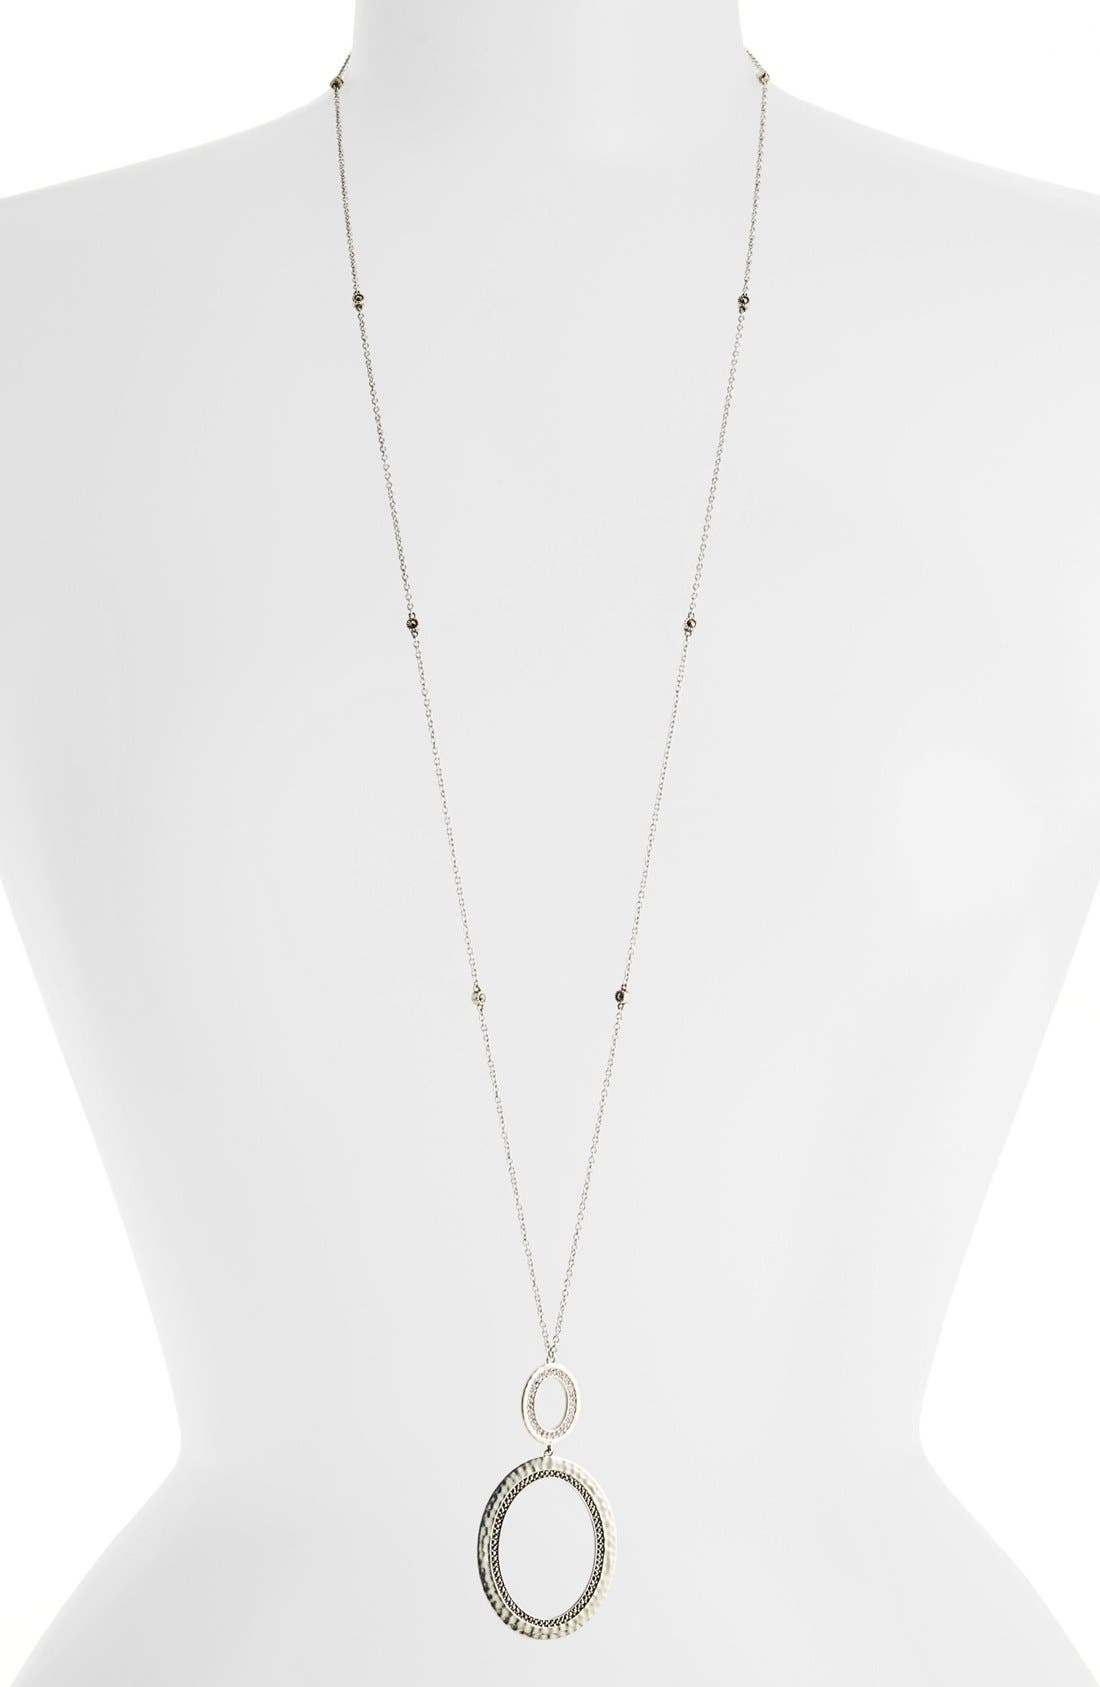 Alternate Image 1 Selected - Judith Jack 'Halo' Convertible Pendant Necklace